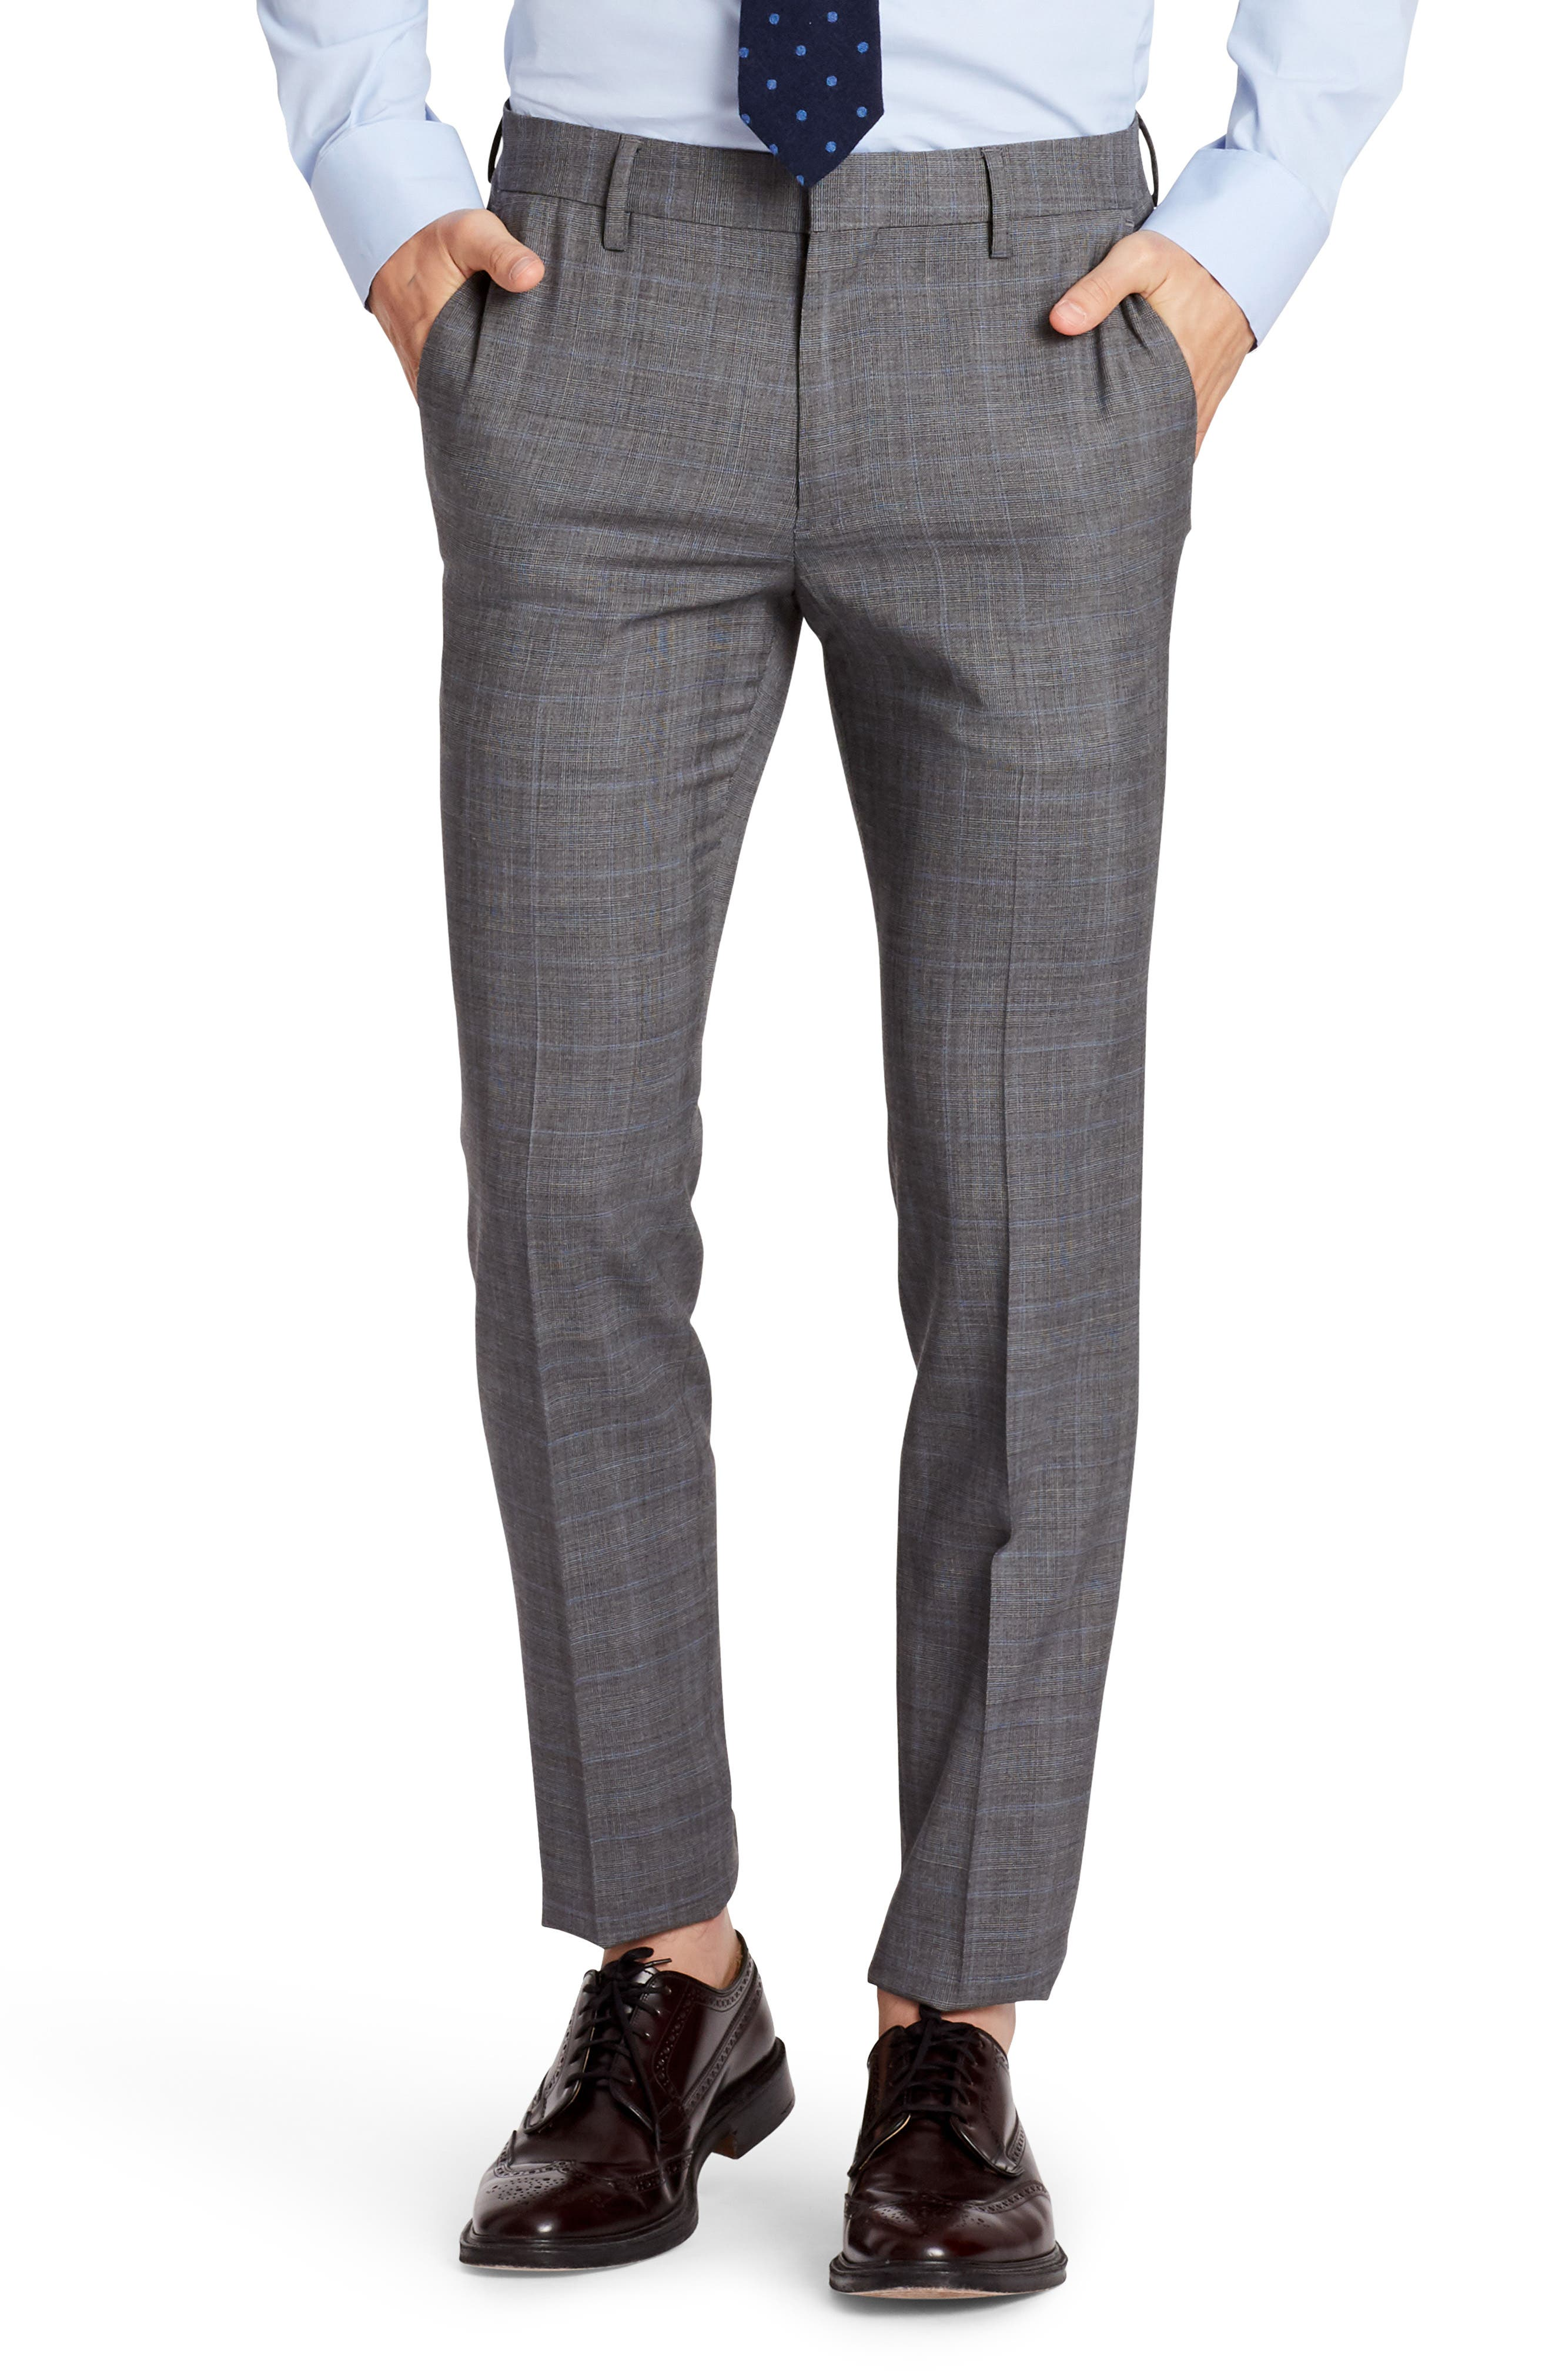 BONOBOS, Jetsetter Flat Front Plaid Stretch Wool Trousers, Main thumbnail 1, color, 020